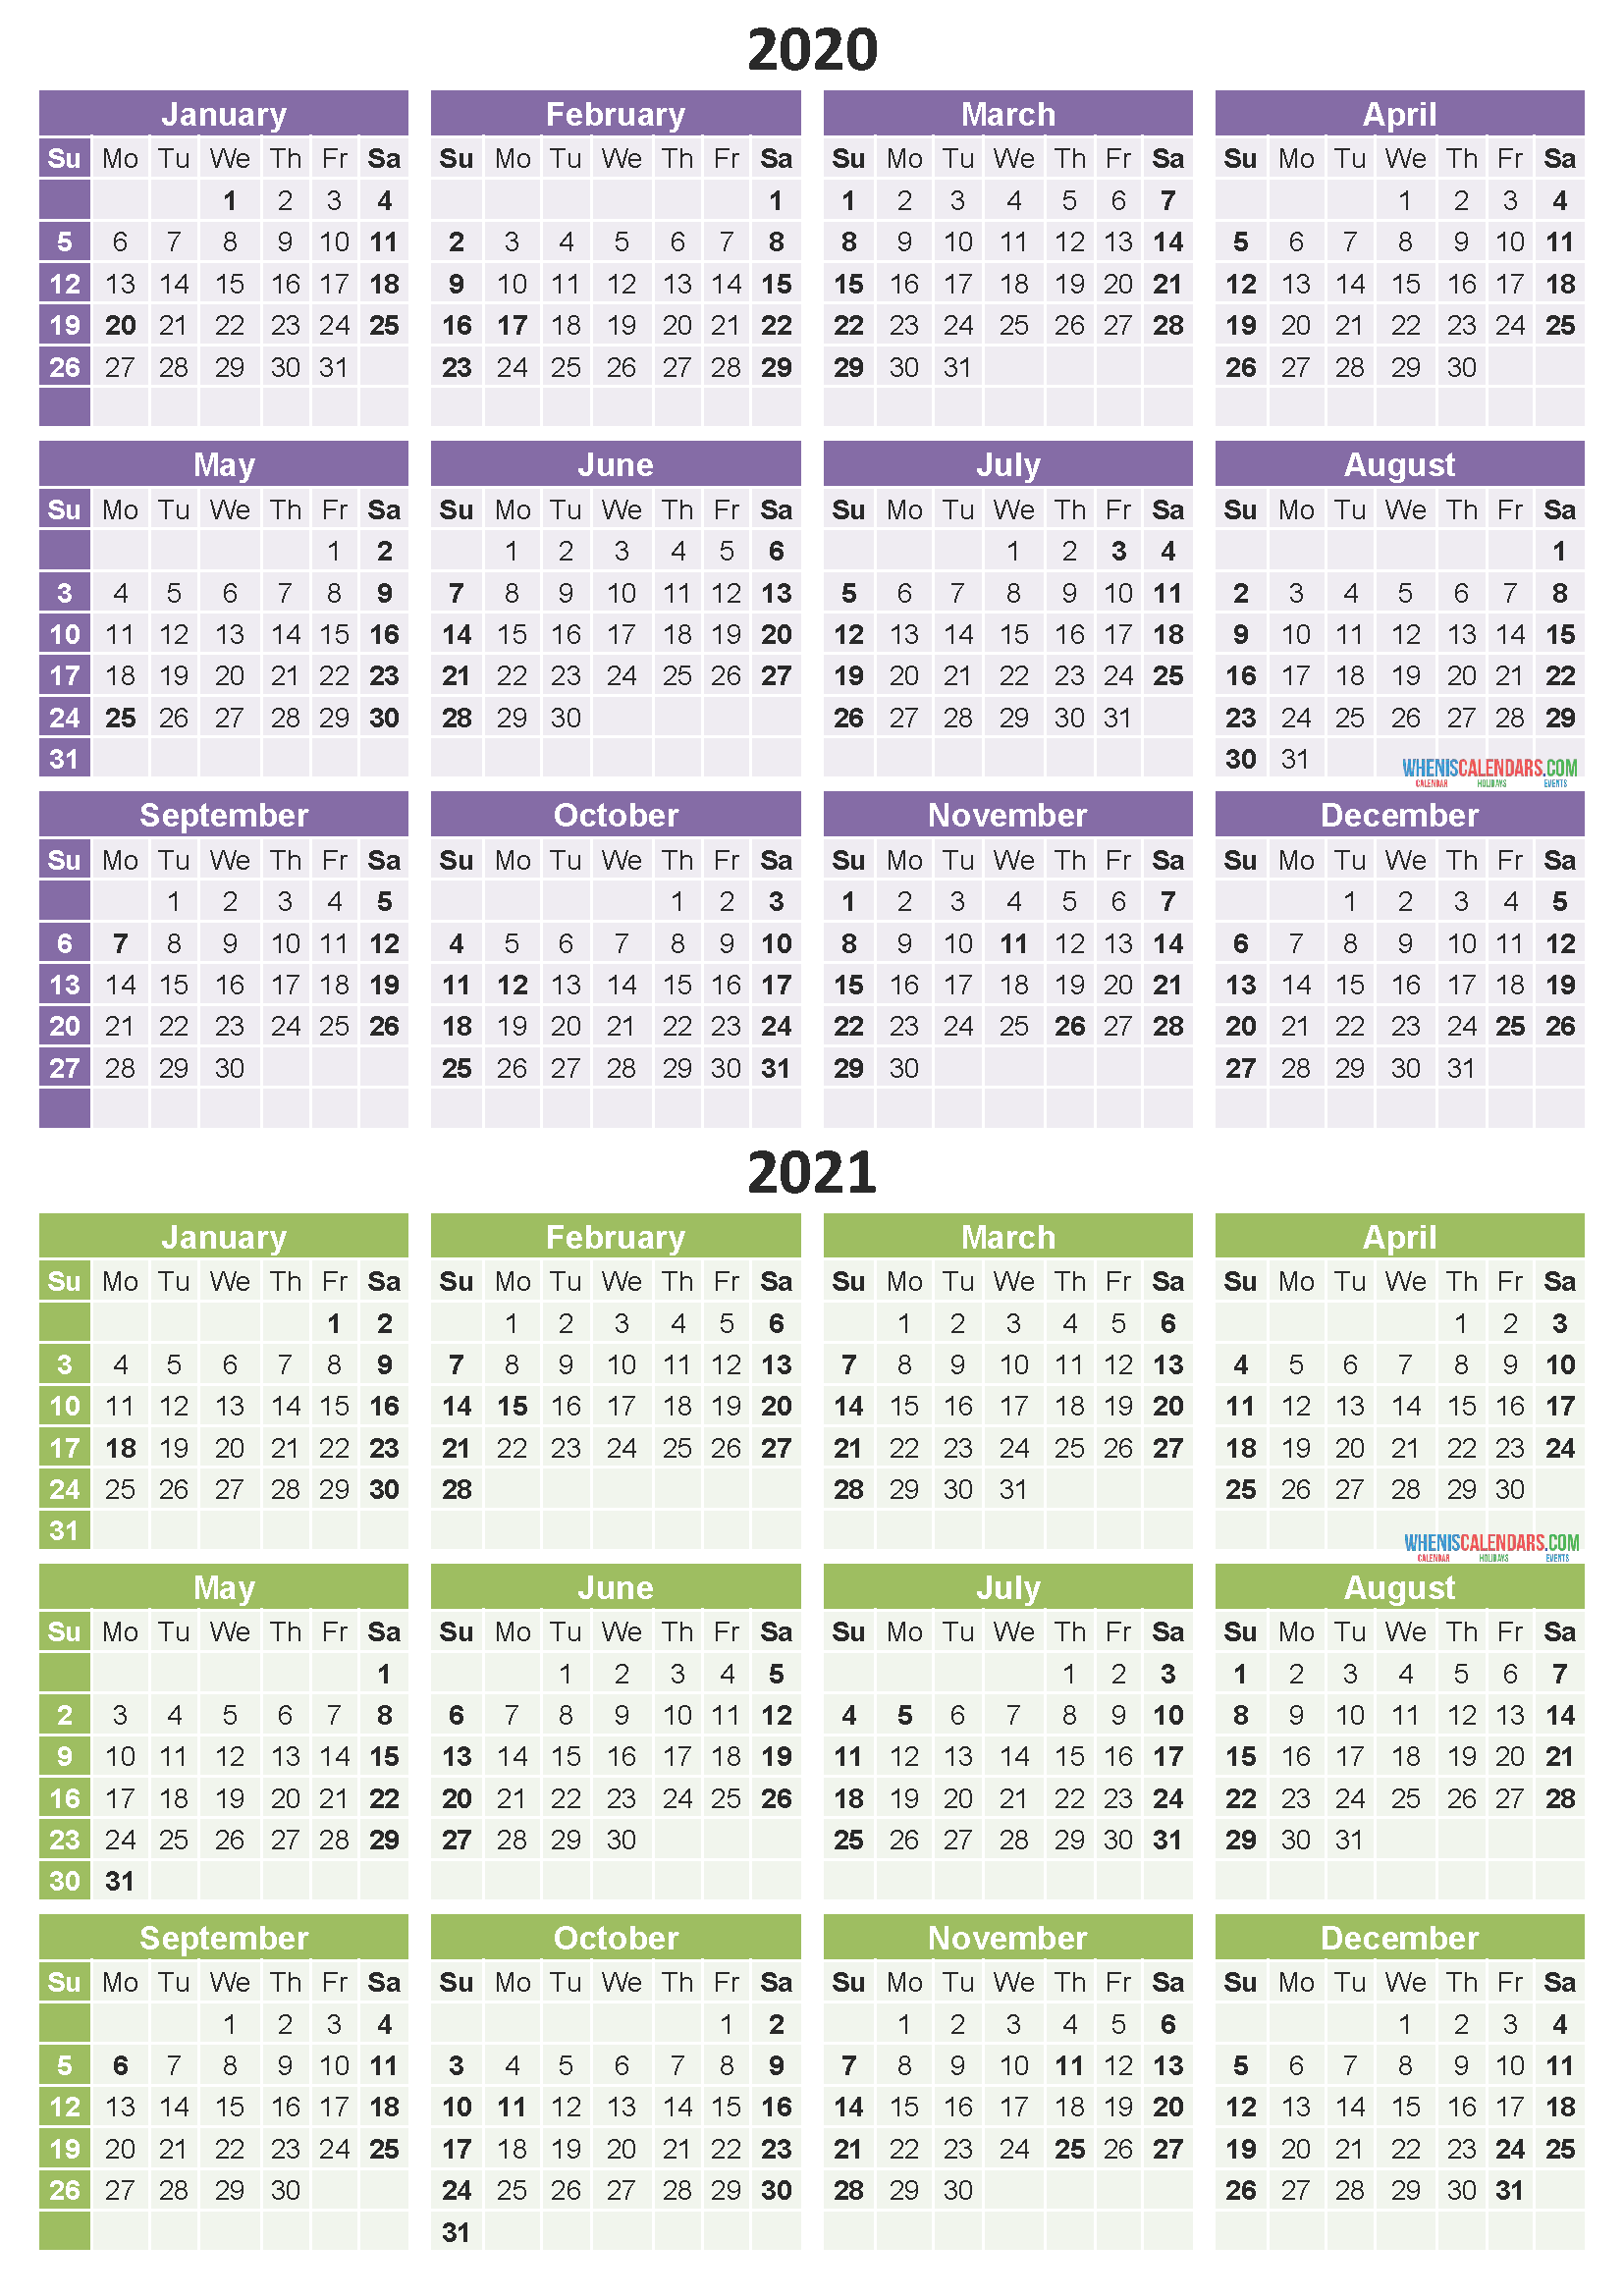 Free Printable 2020 2021 Calendar with Holidays PDF, Word